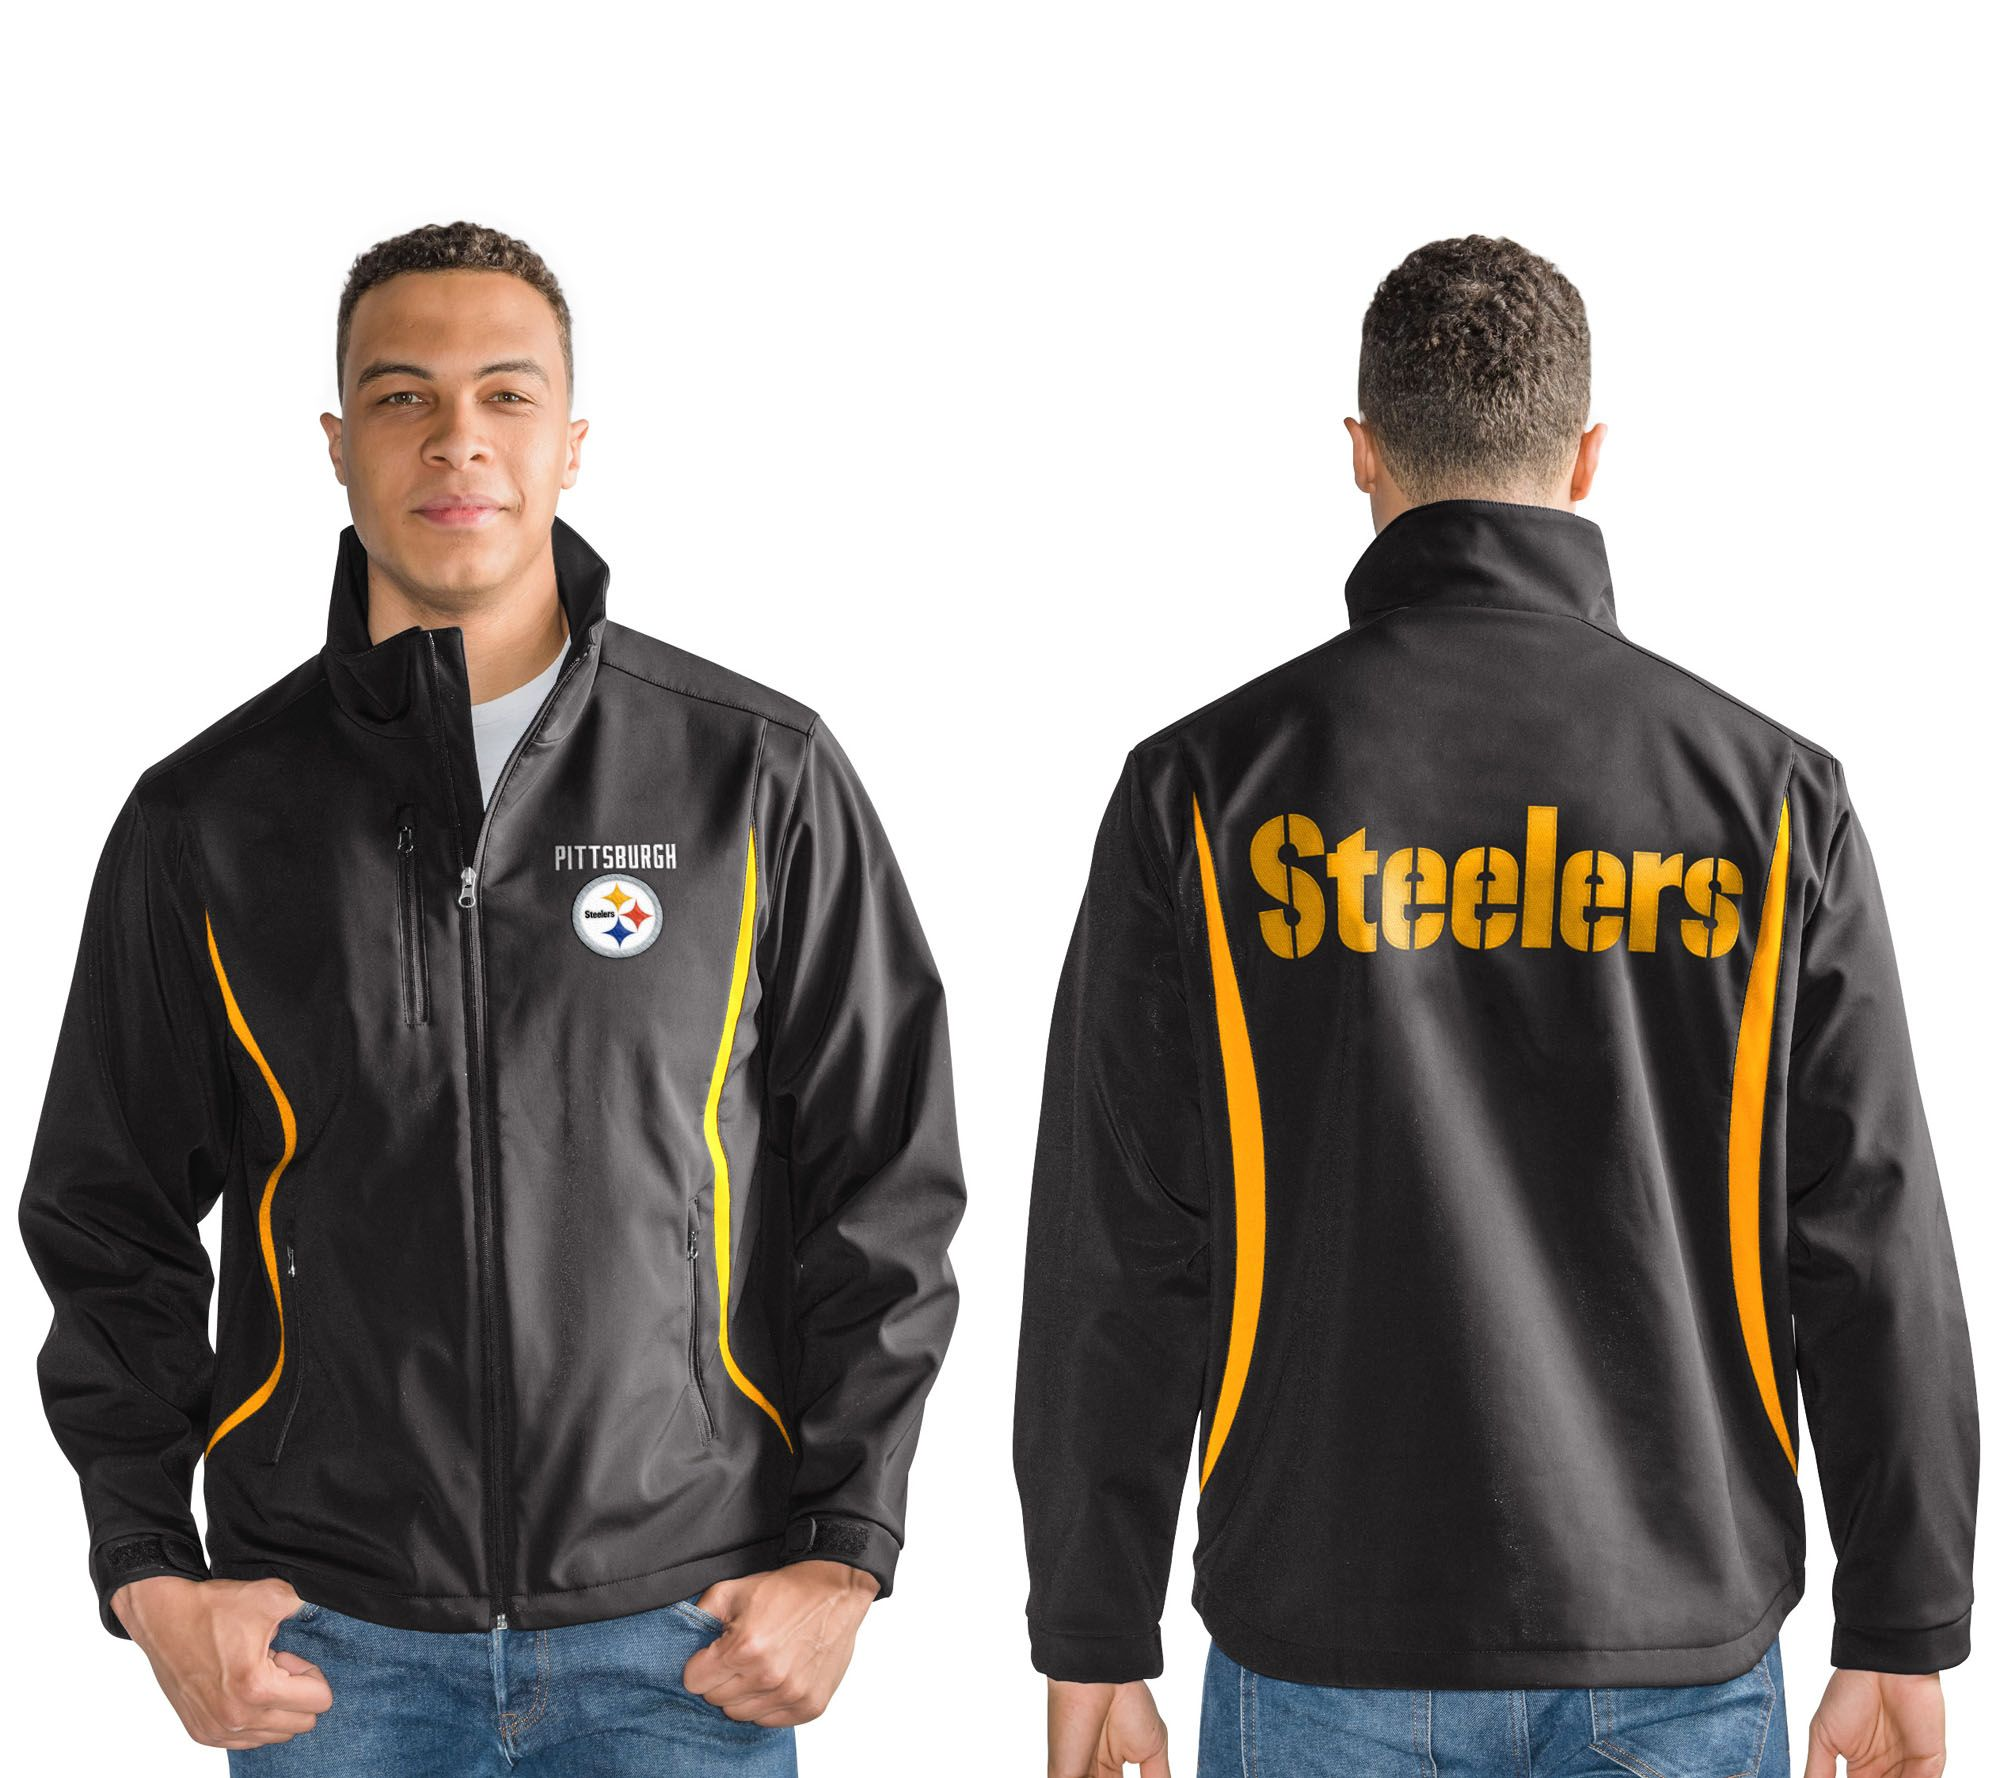 NFL Soft Shell Bonded Jacket with Fleece Interior - Page 1 — QVC.com bde344b8c